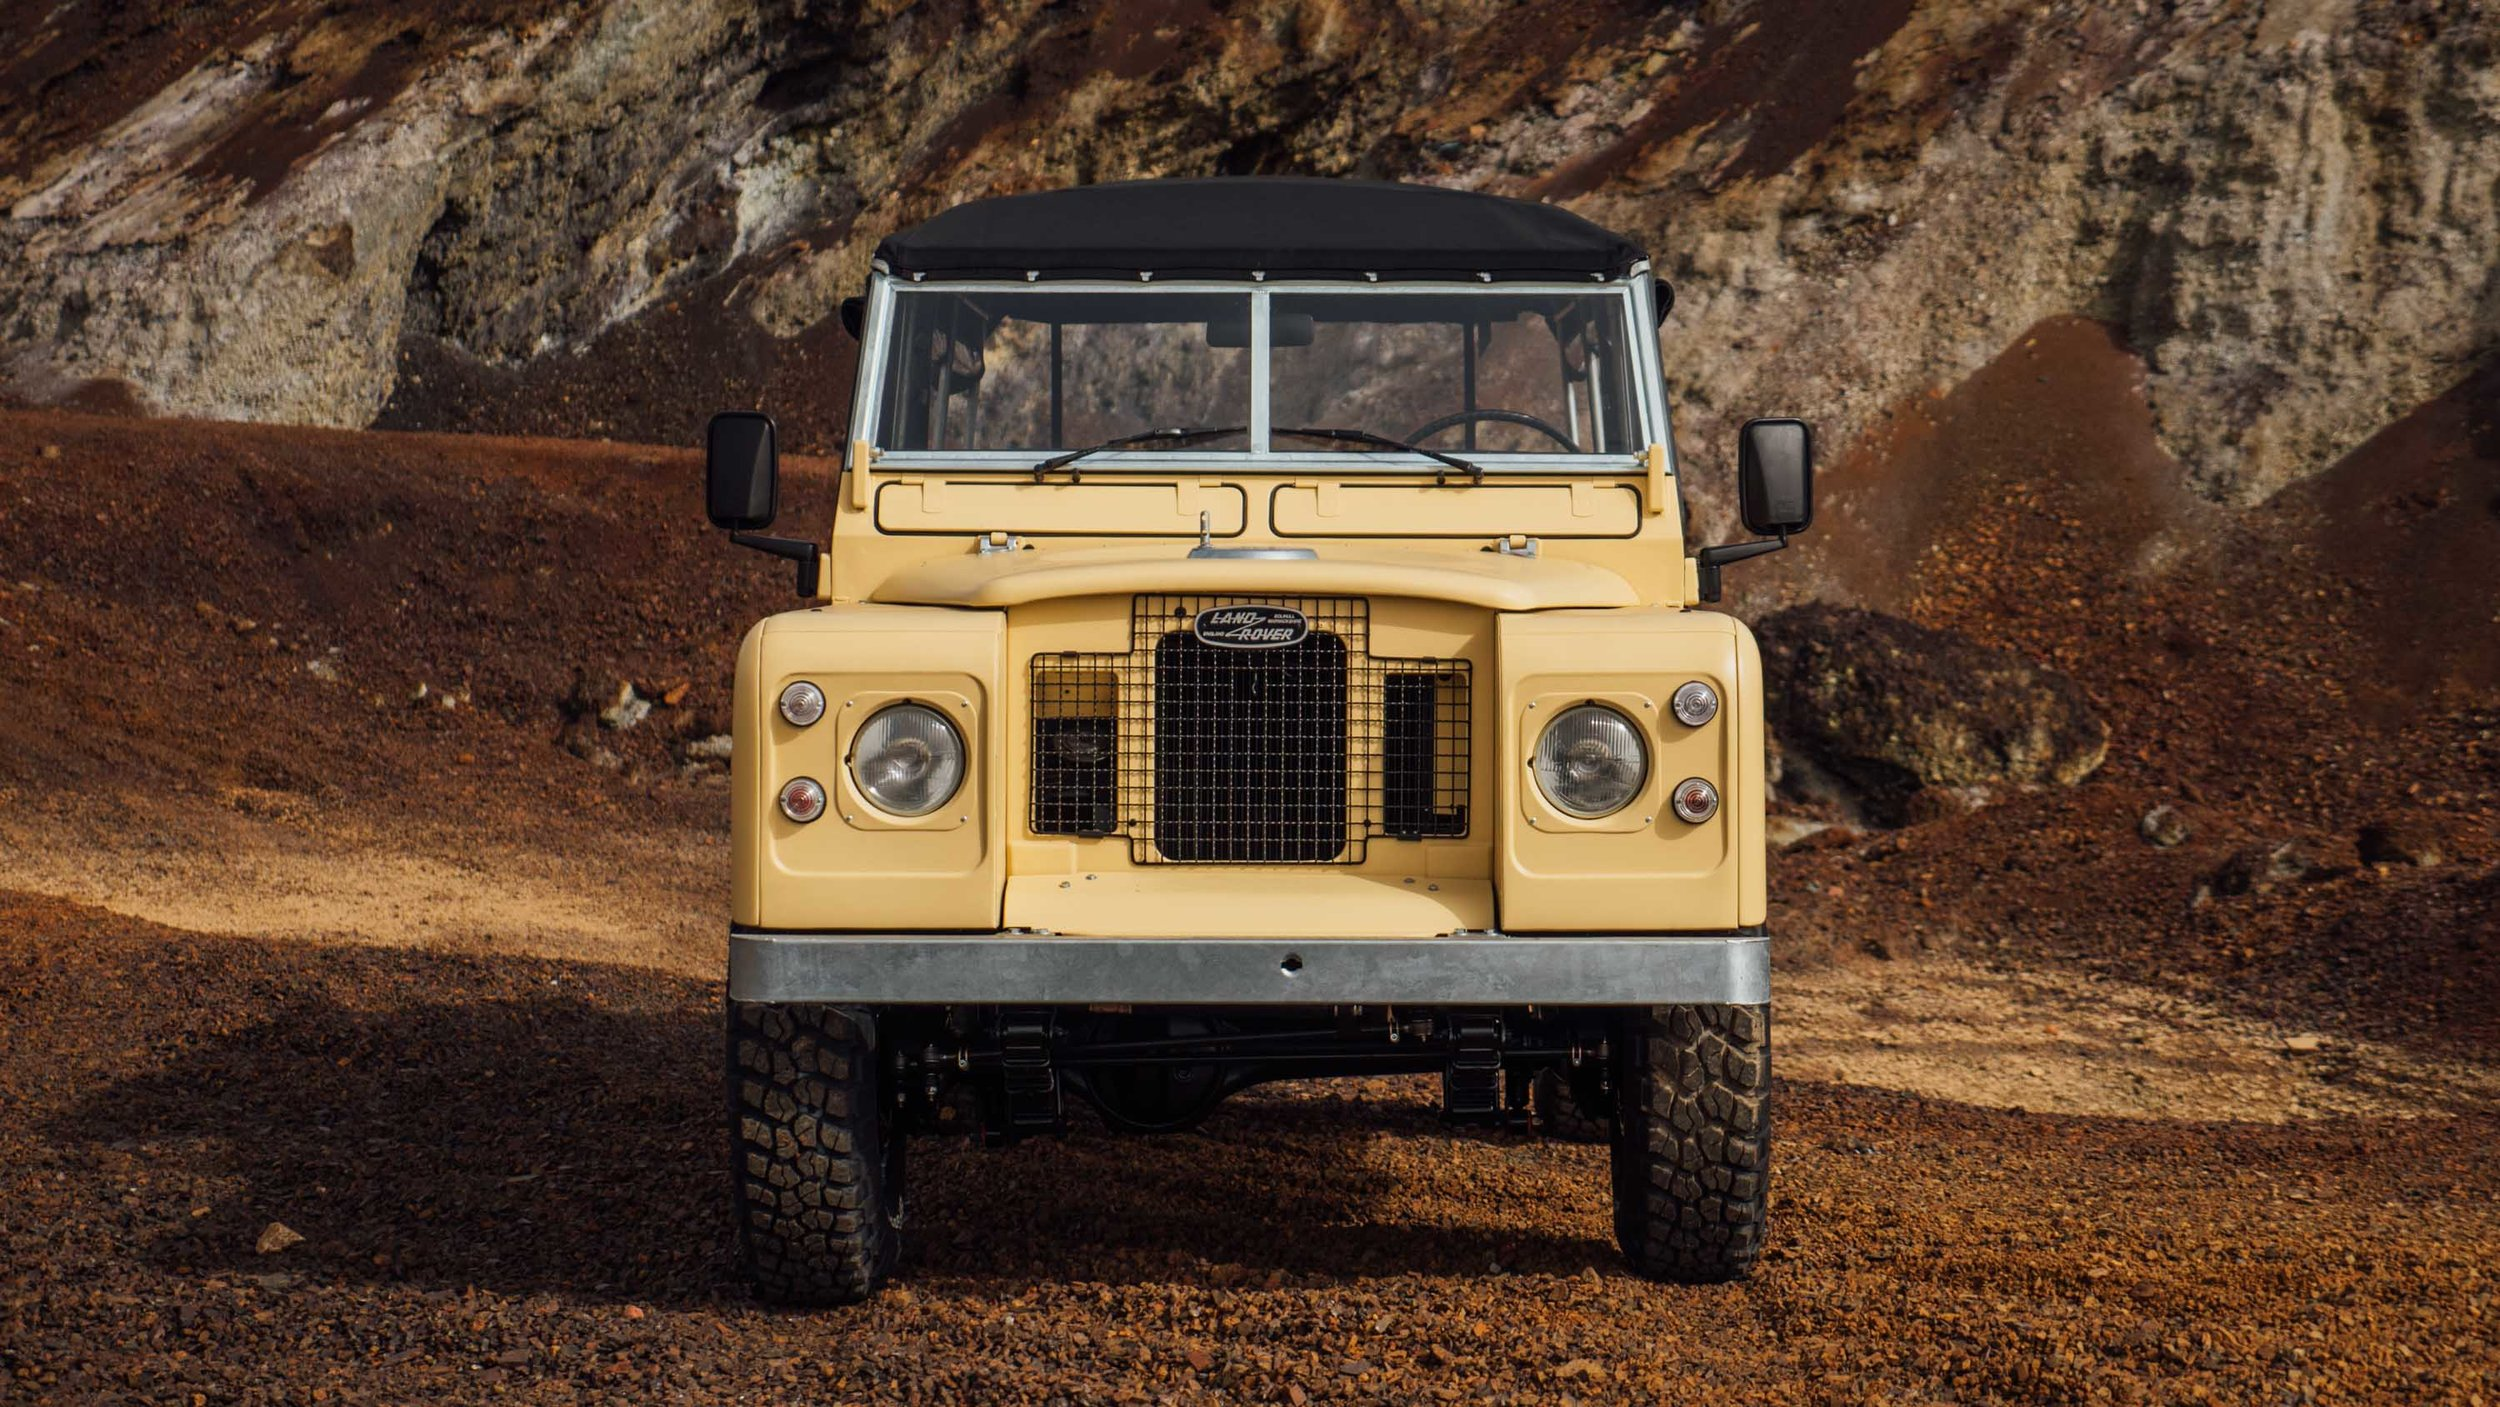 coolnvintage Land Rover S3 (164 of 207).jpg